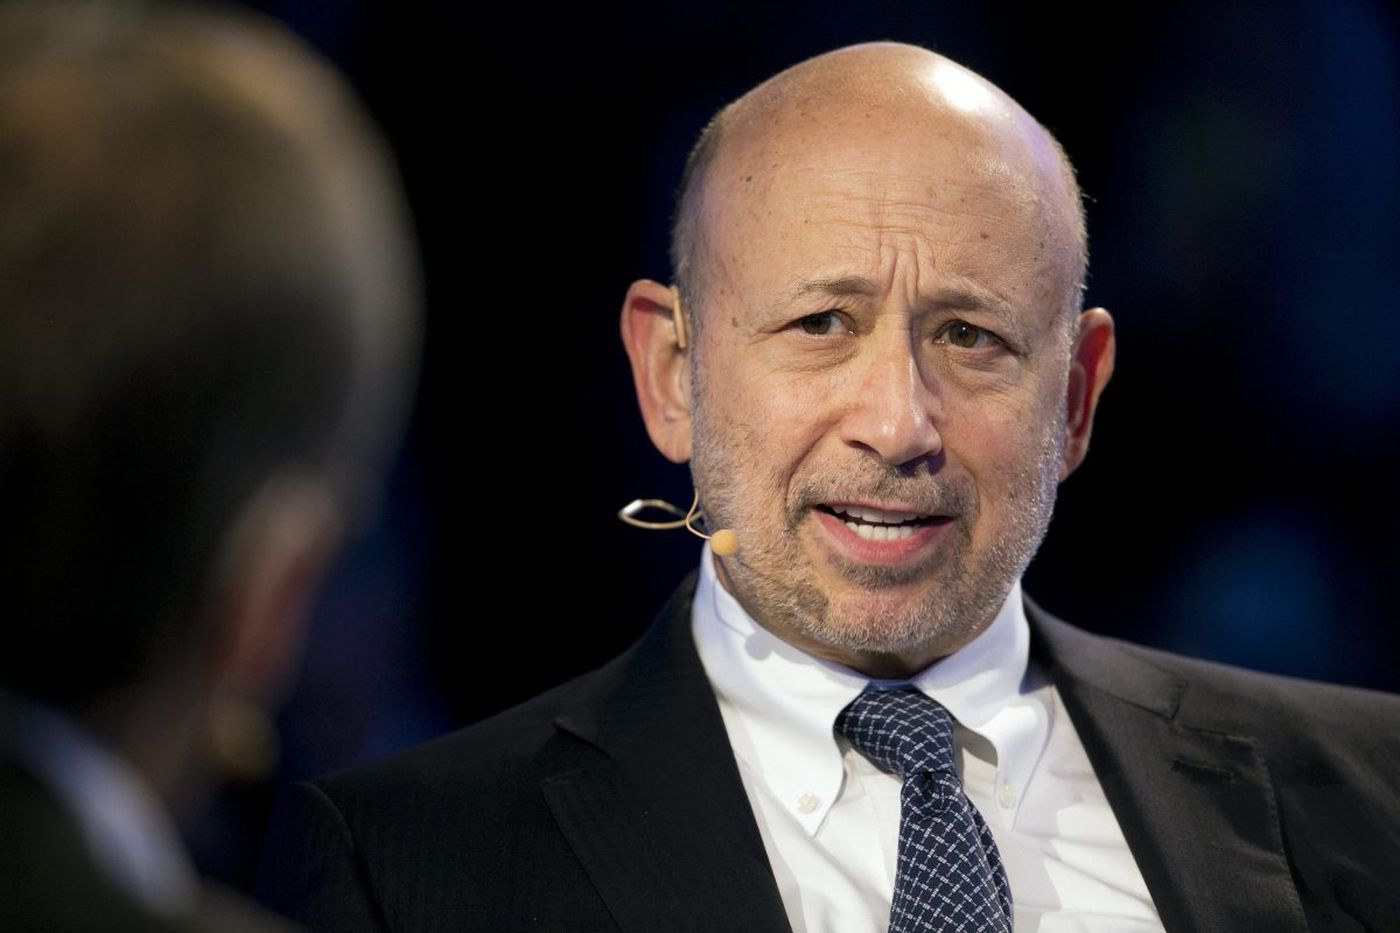 Goldman Sachs sets up likely heir apparent to CEO Lloyd Blankfein